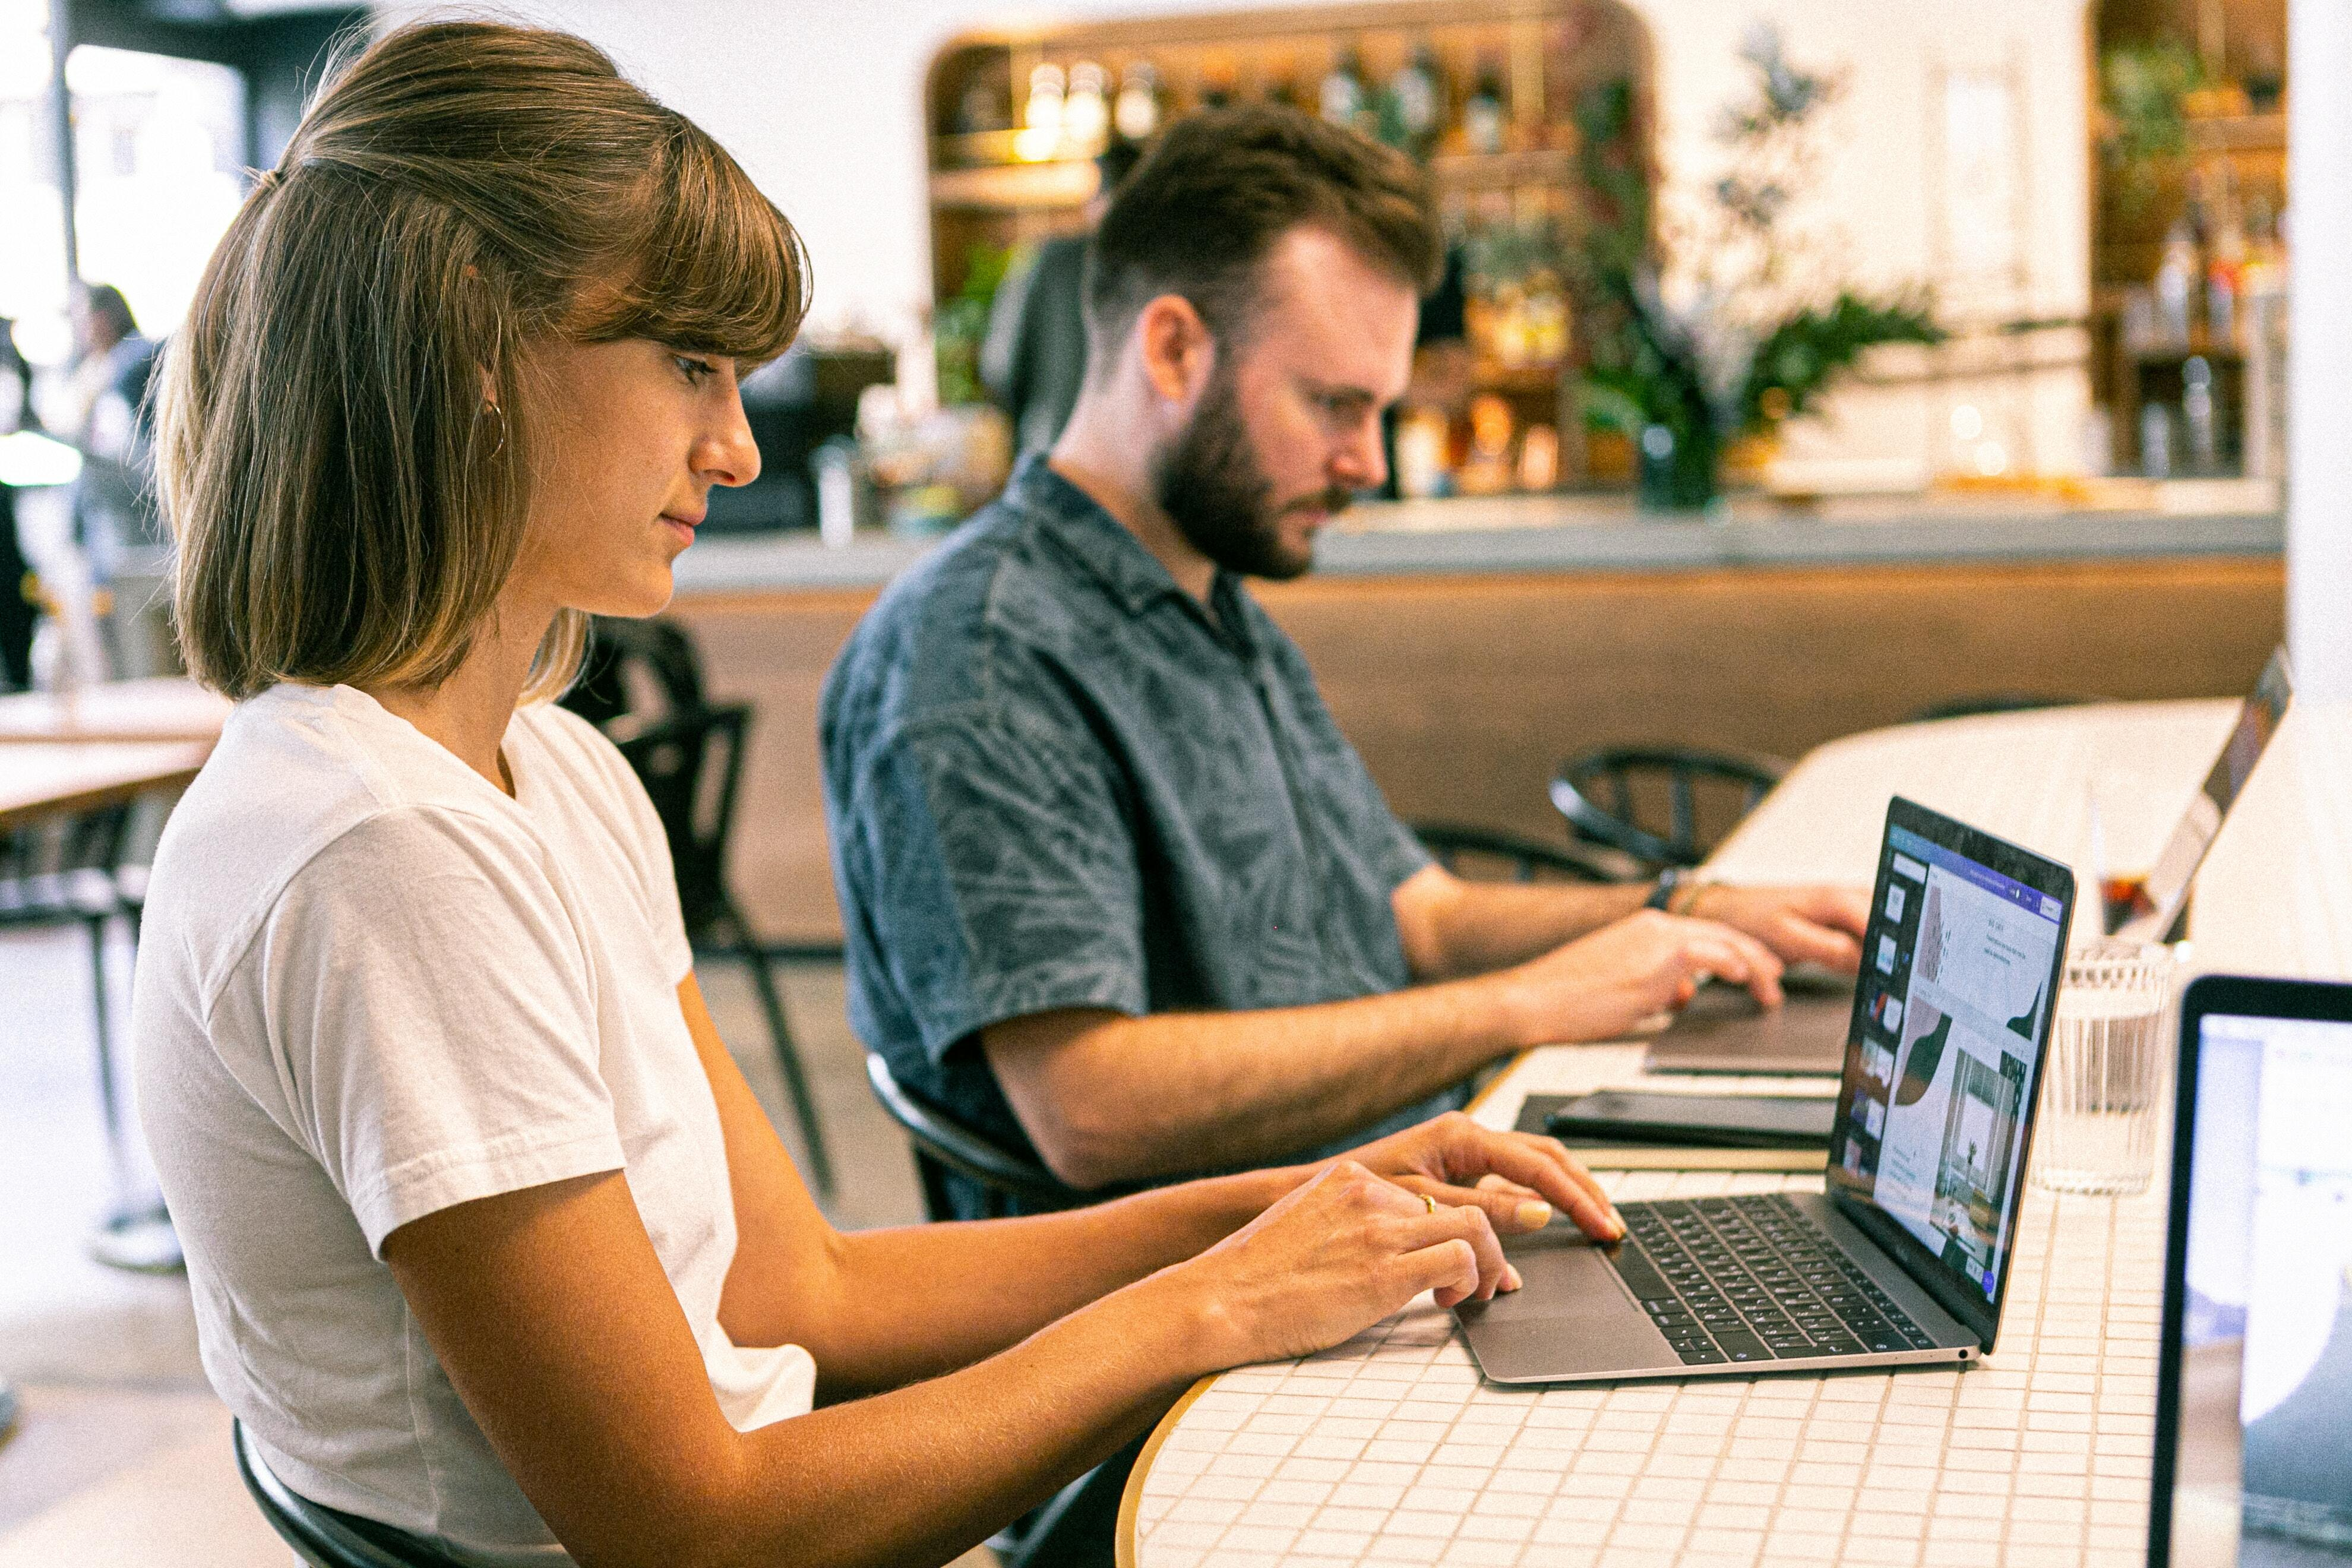 Outsource your social media, newsletters, and other work to this handy AI tool. Pictured: A man and a woman type on laptops.